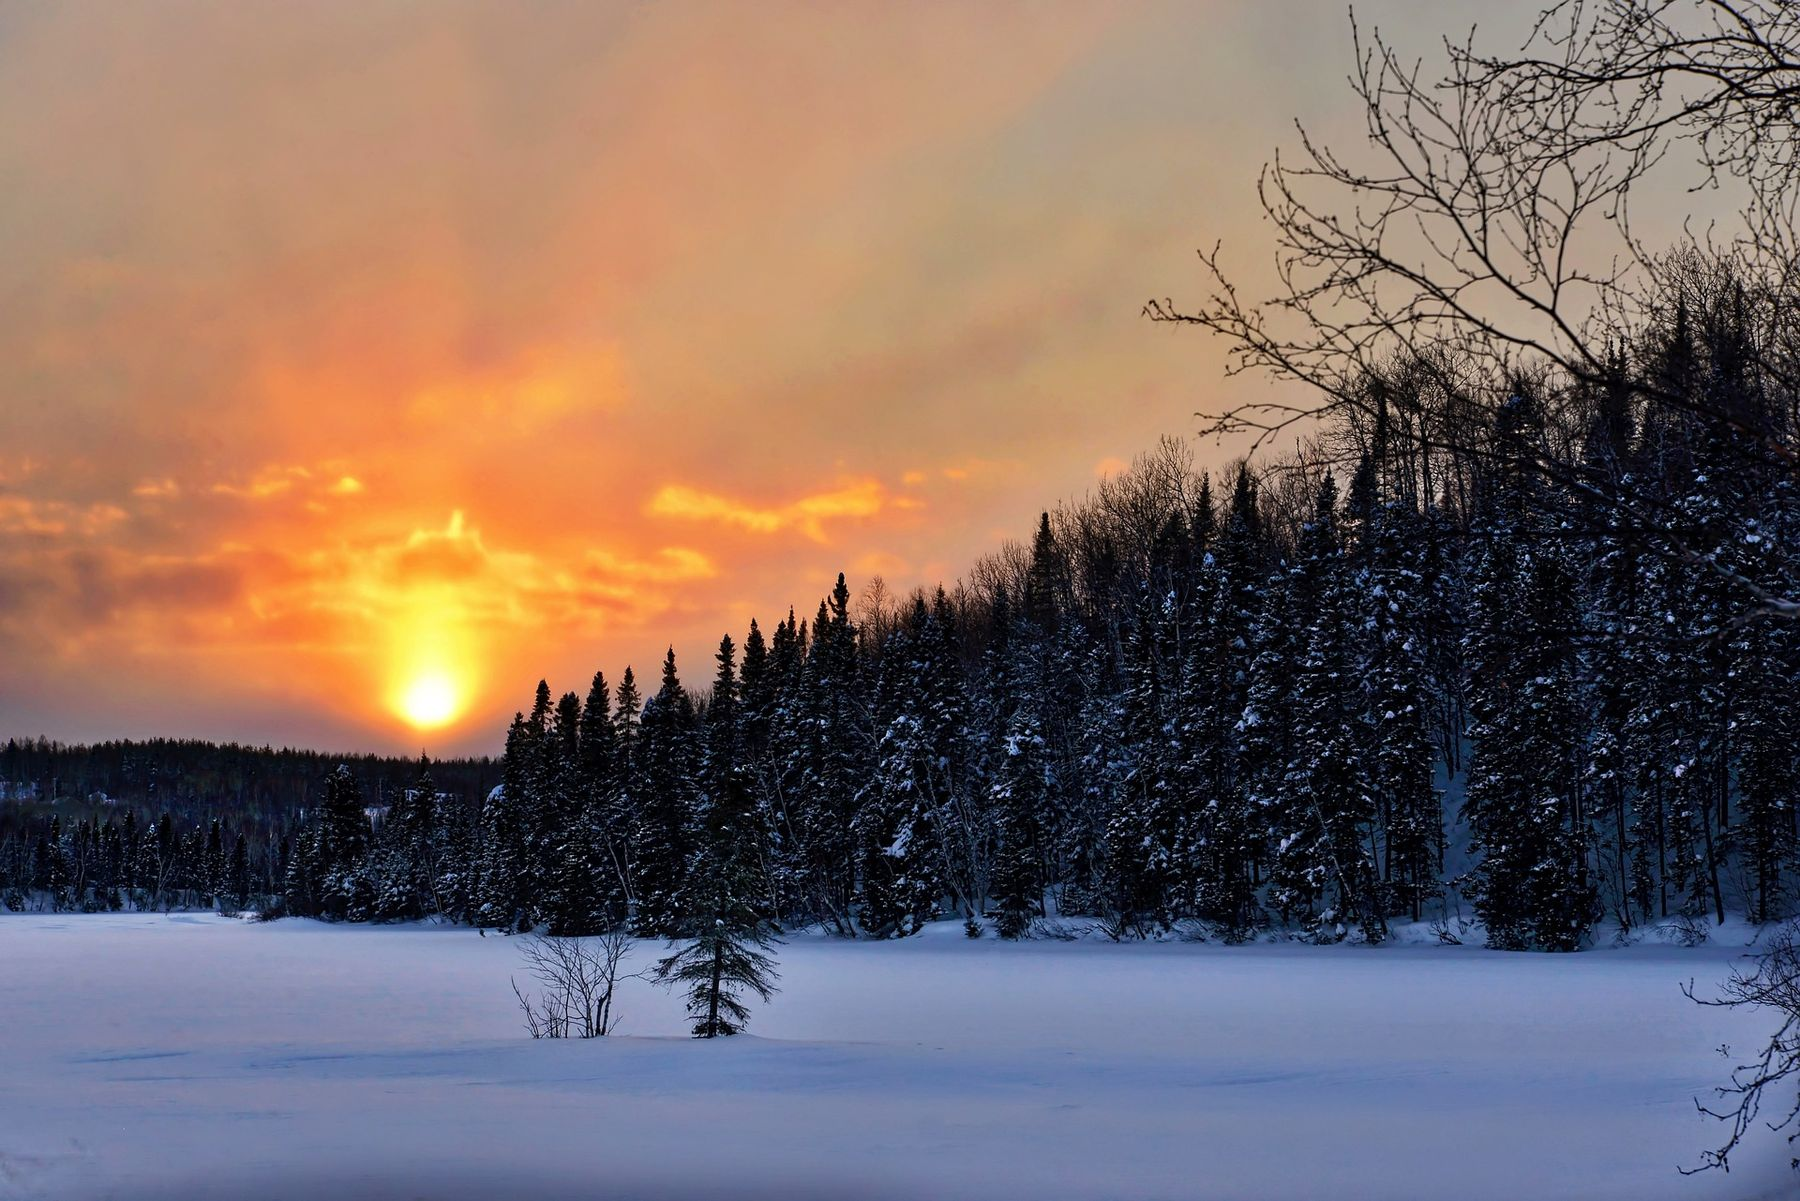 snowy evening and forest in the Quebec countryside